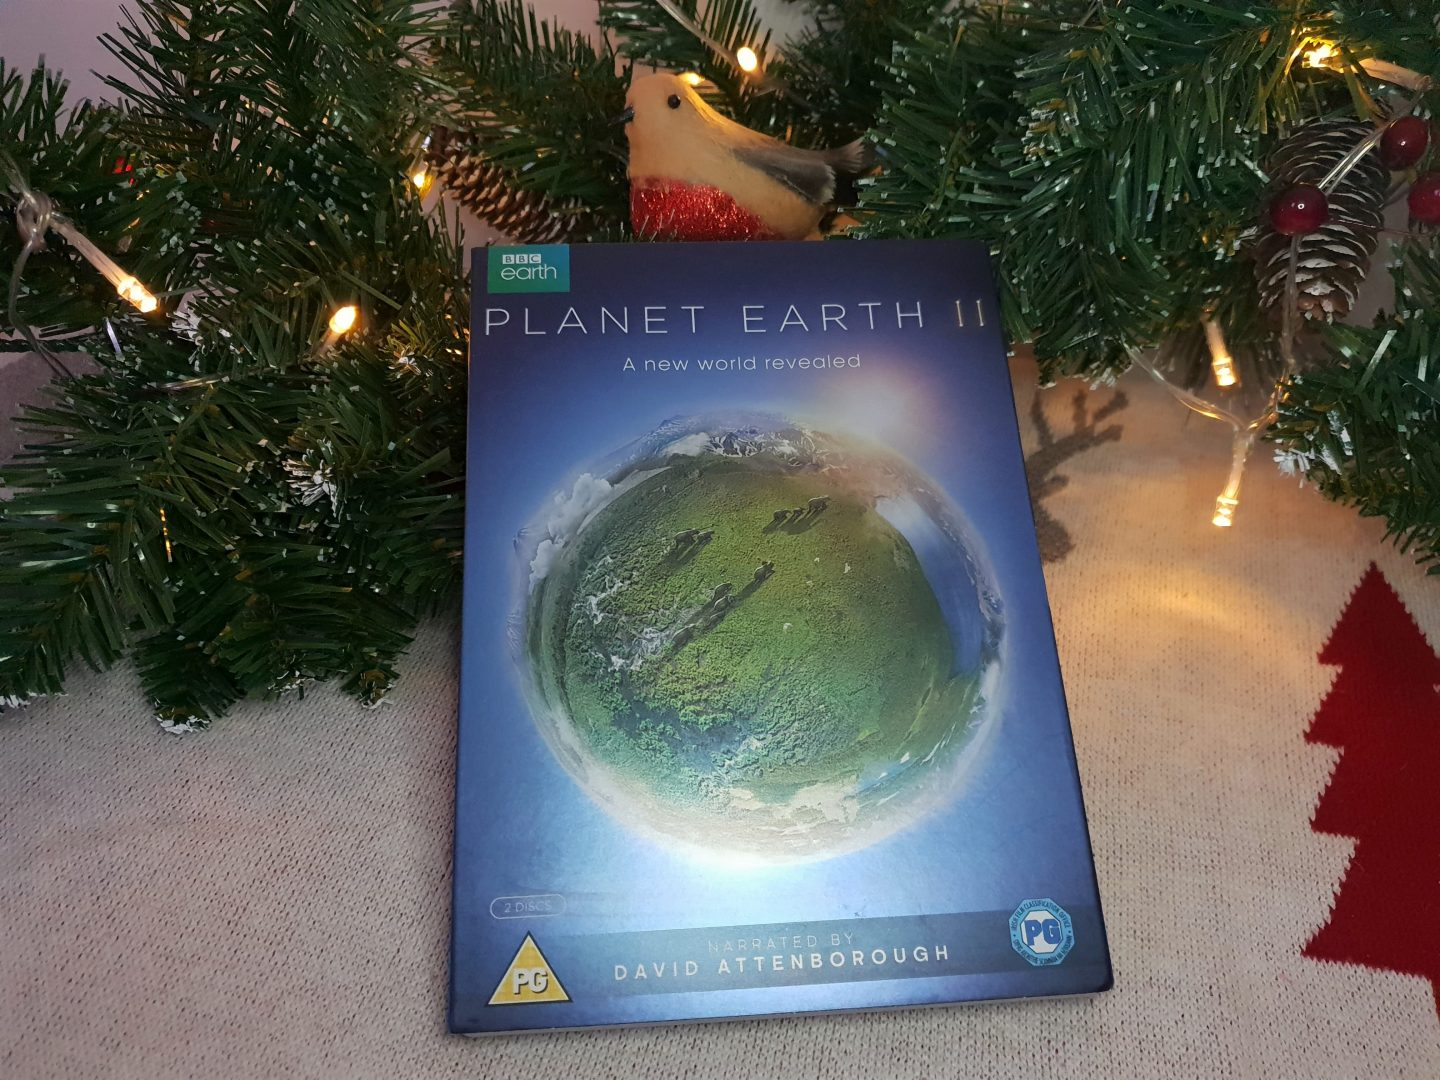 BBC Earth Planet Earth II DVD, David Attenborough